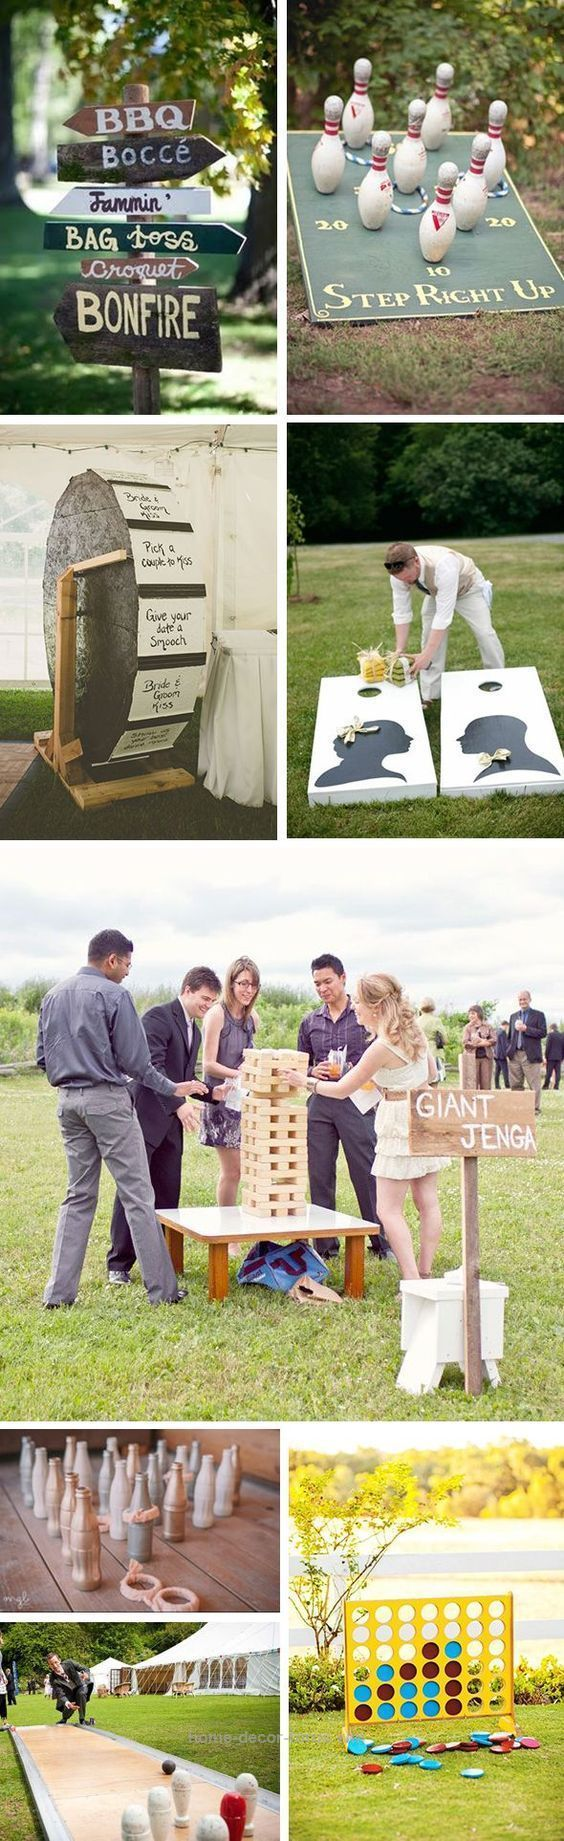 Perfect Outdoor Wedding Reception Lawn Game Ideas / www.deerpearlflow…  The post  Outdoor Wedding Reception Lawn Game Ideas / www.deerpearlflow……  appeared first on  Home Decor For US .